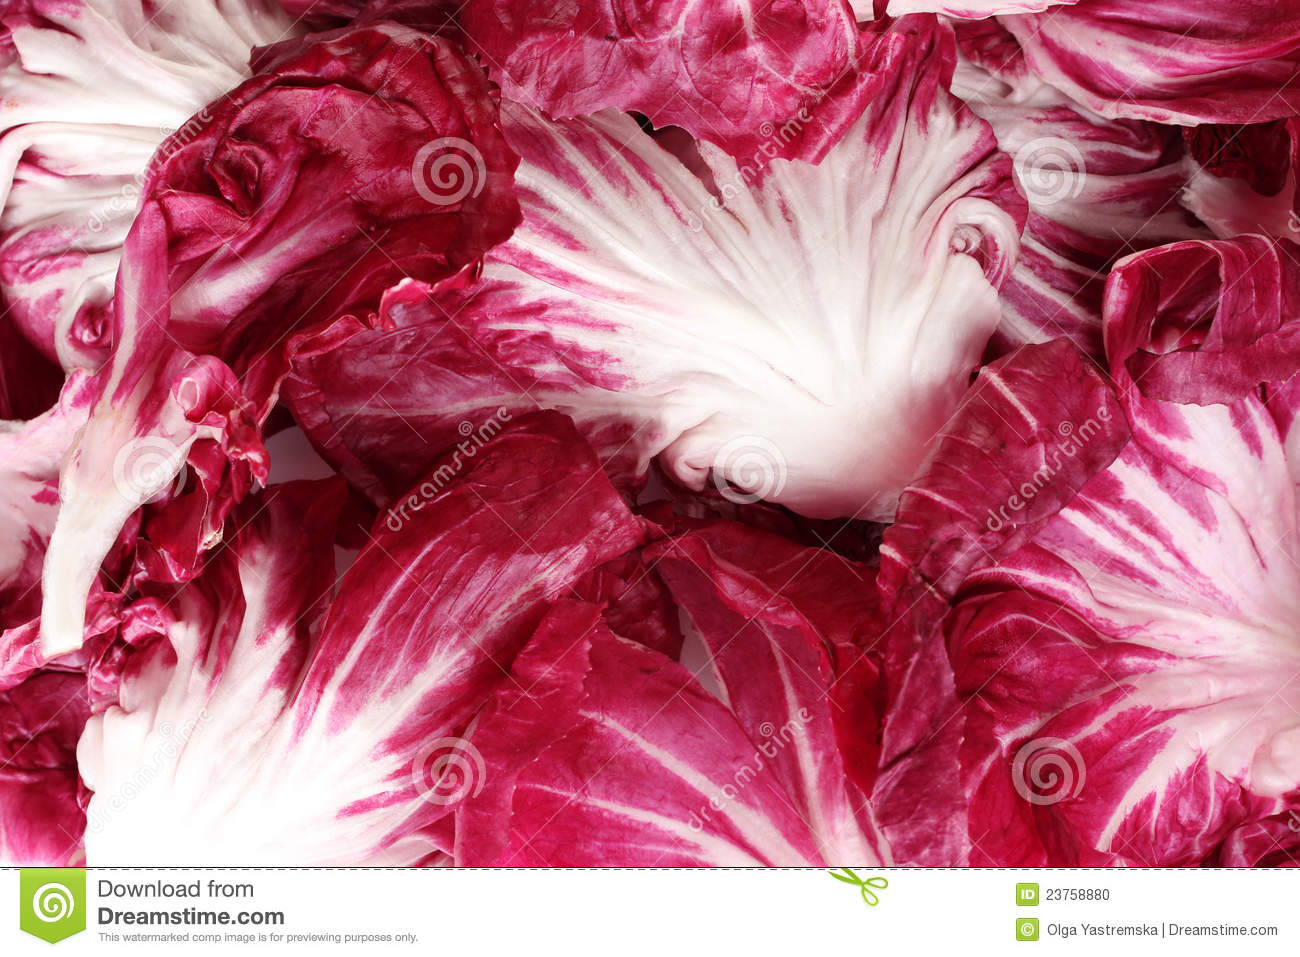 Red Cabbage Leaves Closeup Stock Photo - Image: 23758880